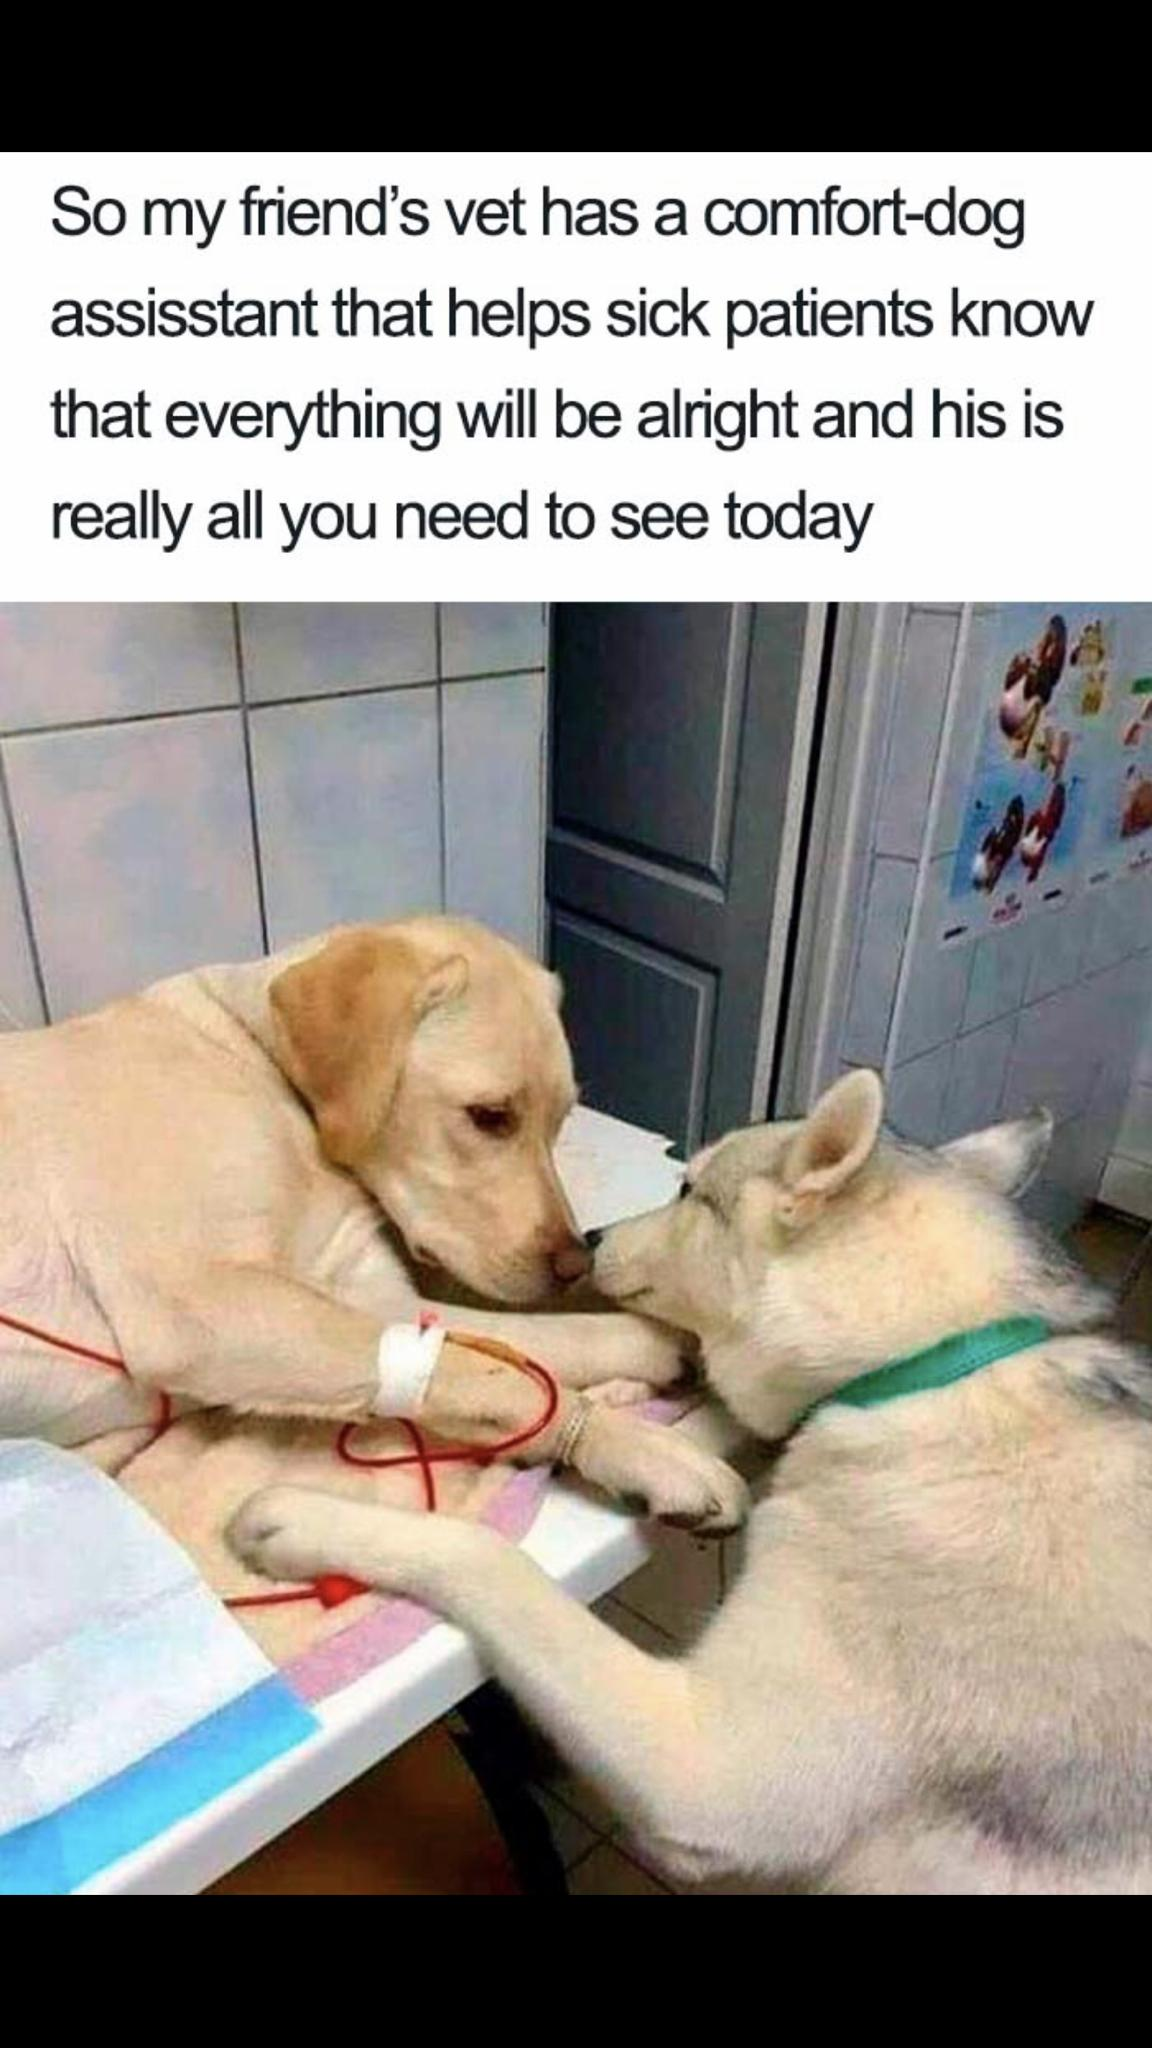 So my friend's vet has a comfort-dog assistant that helps sick patients know that everything will be alright and he is really all you need today